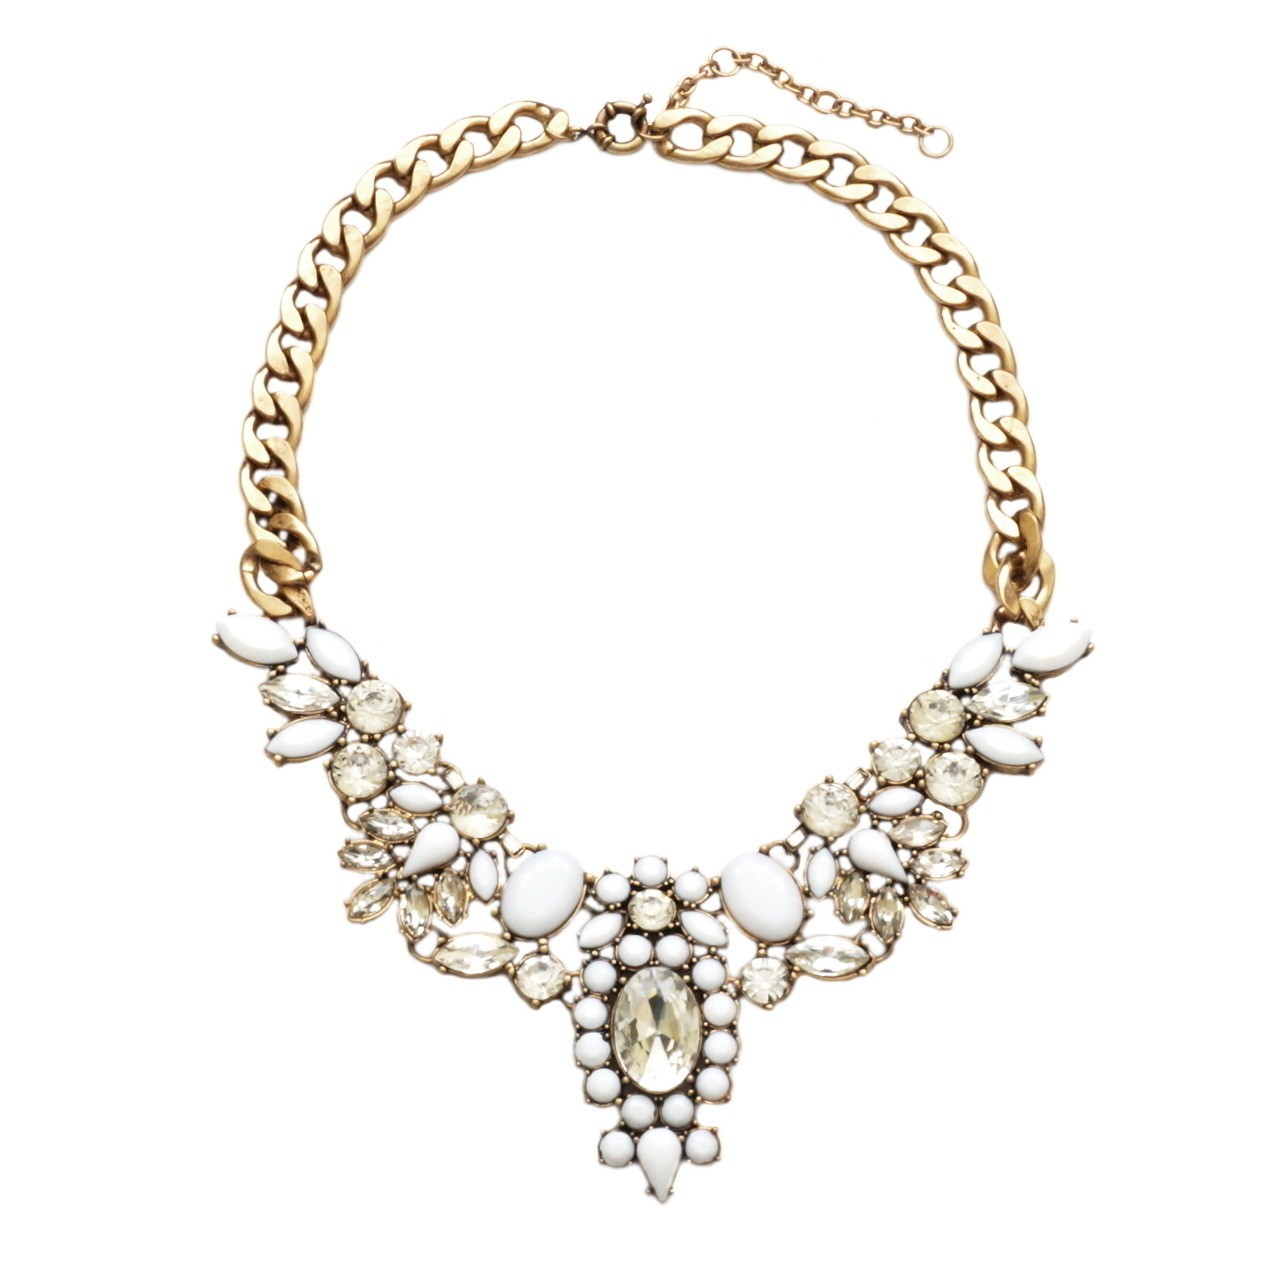 White Crystal Flower Bib Statement Necklace | Choker